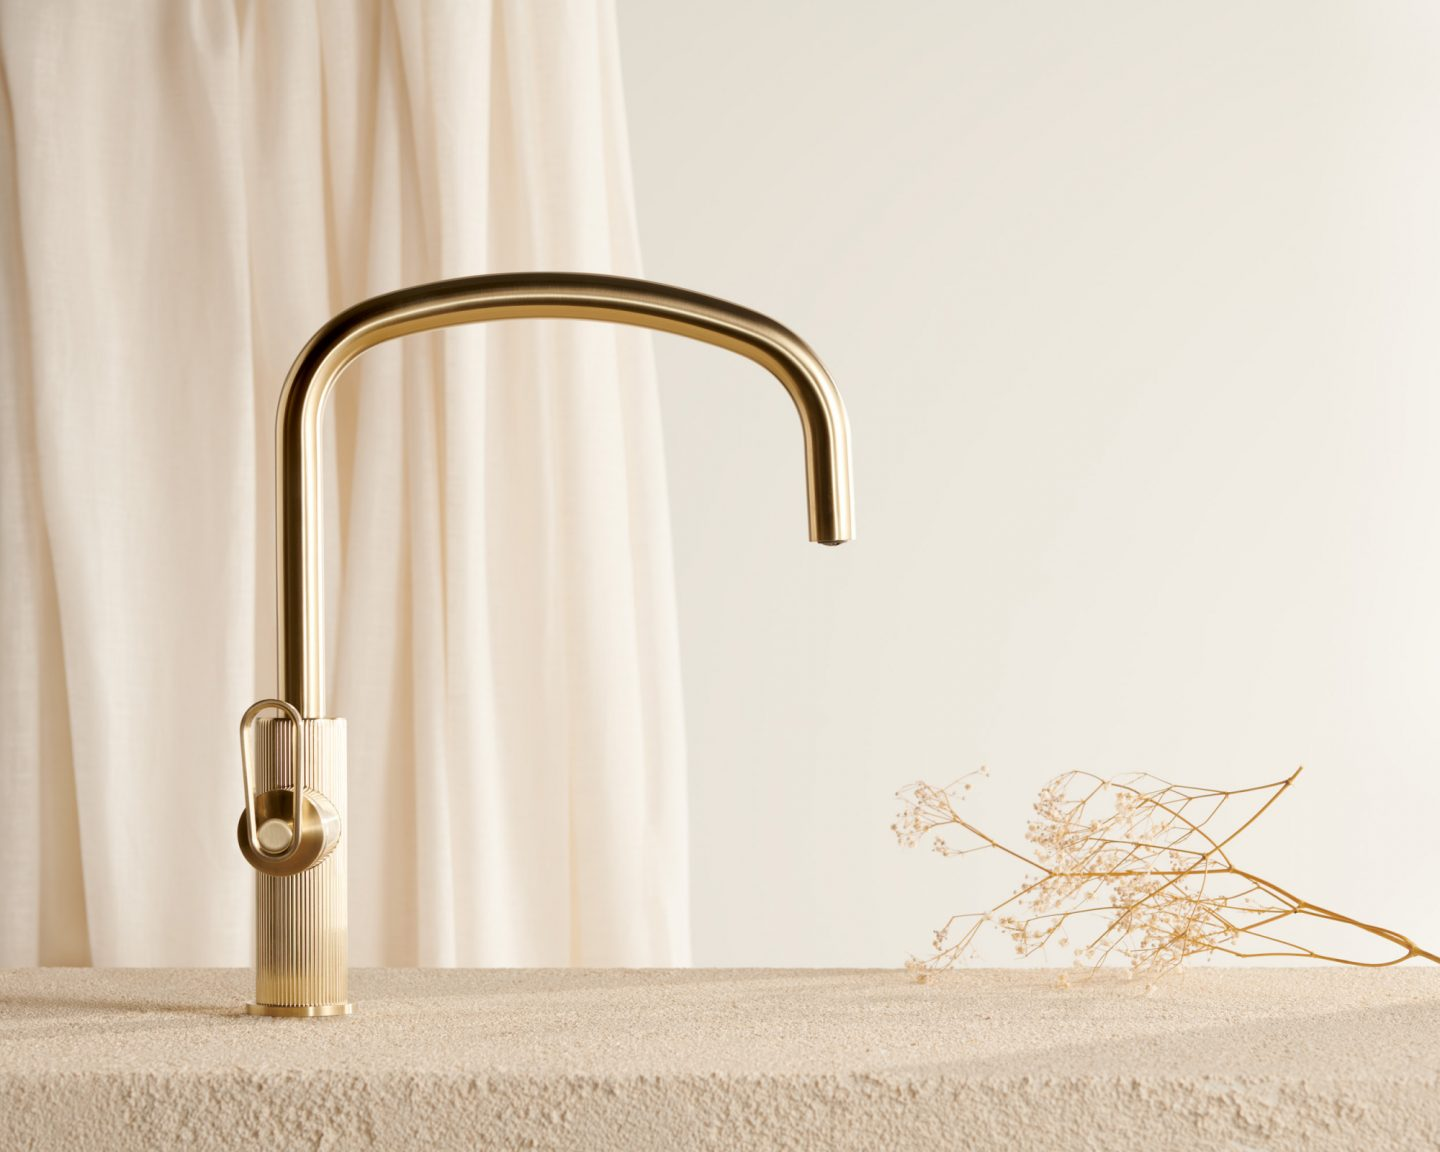 Introducing Frame by Novas: Architectural Products Connected by Design